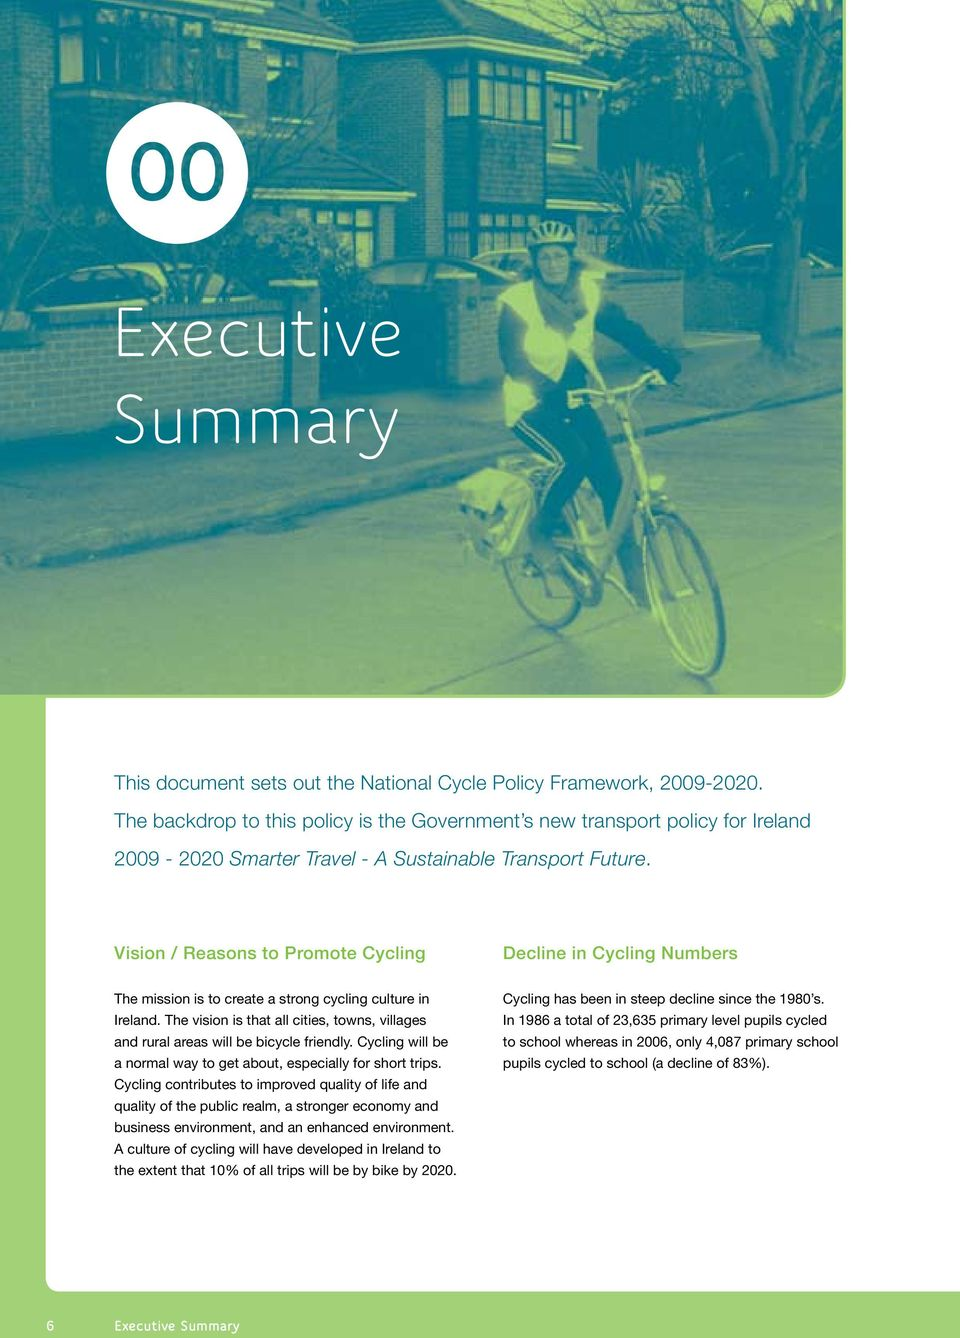 Vision / Reasons to Promote Cycling Decline in Cycling Numbers The mission is to create a strong cycling culture in Ireland.